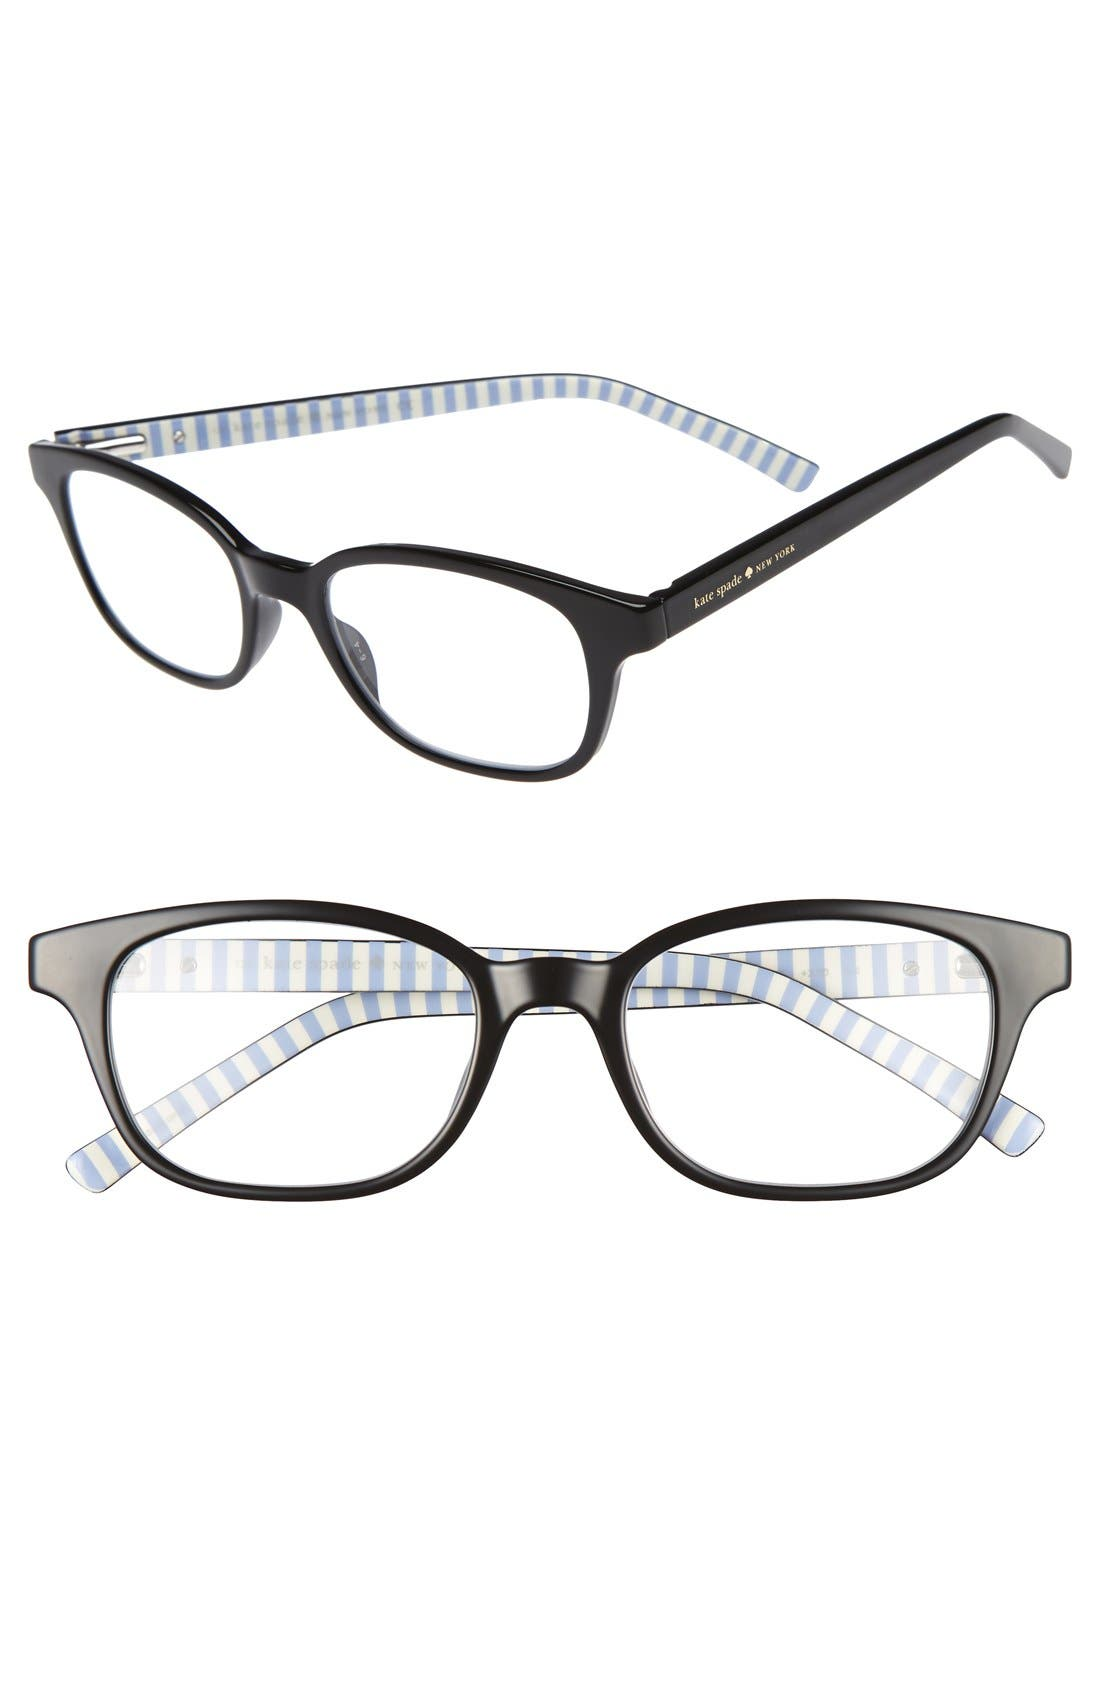 Main Image - kate spade new york kya 49mm reading glasses